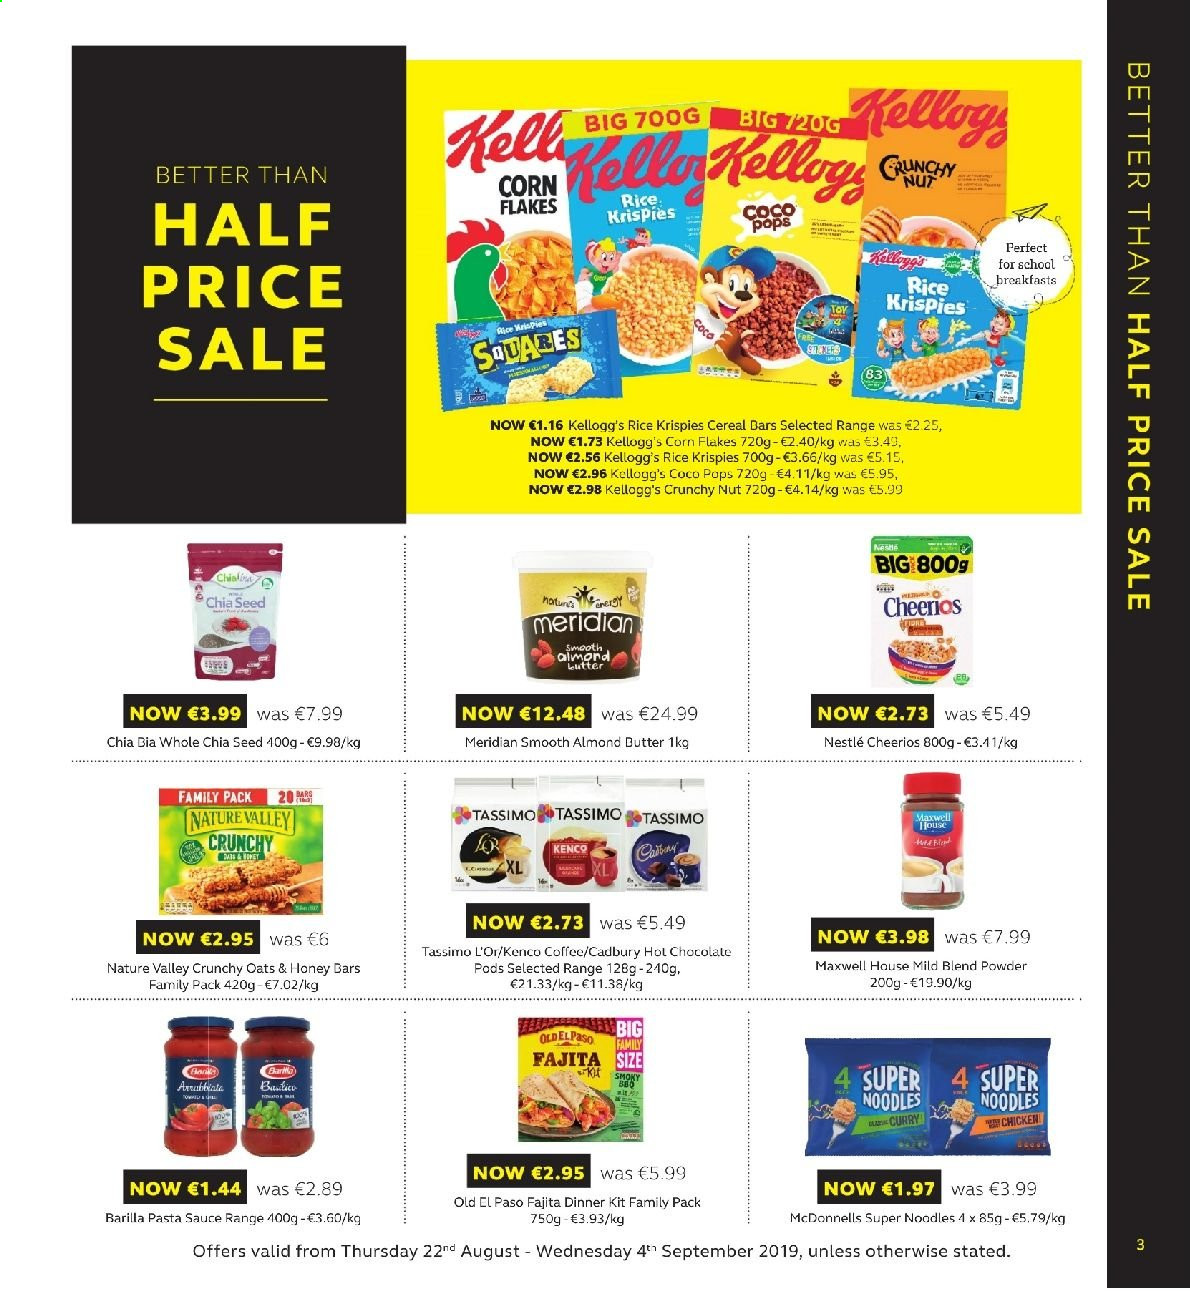 SuperValu offer  - 22.8.2019 - 4.9.2019 - Sales products - Old El Paso, sauce, dinner kit, Barilla, fajita, almond butter, Nestlé, chocolate, cereal bar, Kellogg's, Cadbury, oats, cereals, Cheerios, corn flakes, coco pops, Rice Krispies, Nature Valley, noodles, pasta sauce, almonds, coffee, L'Or, chicken. Page 3.